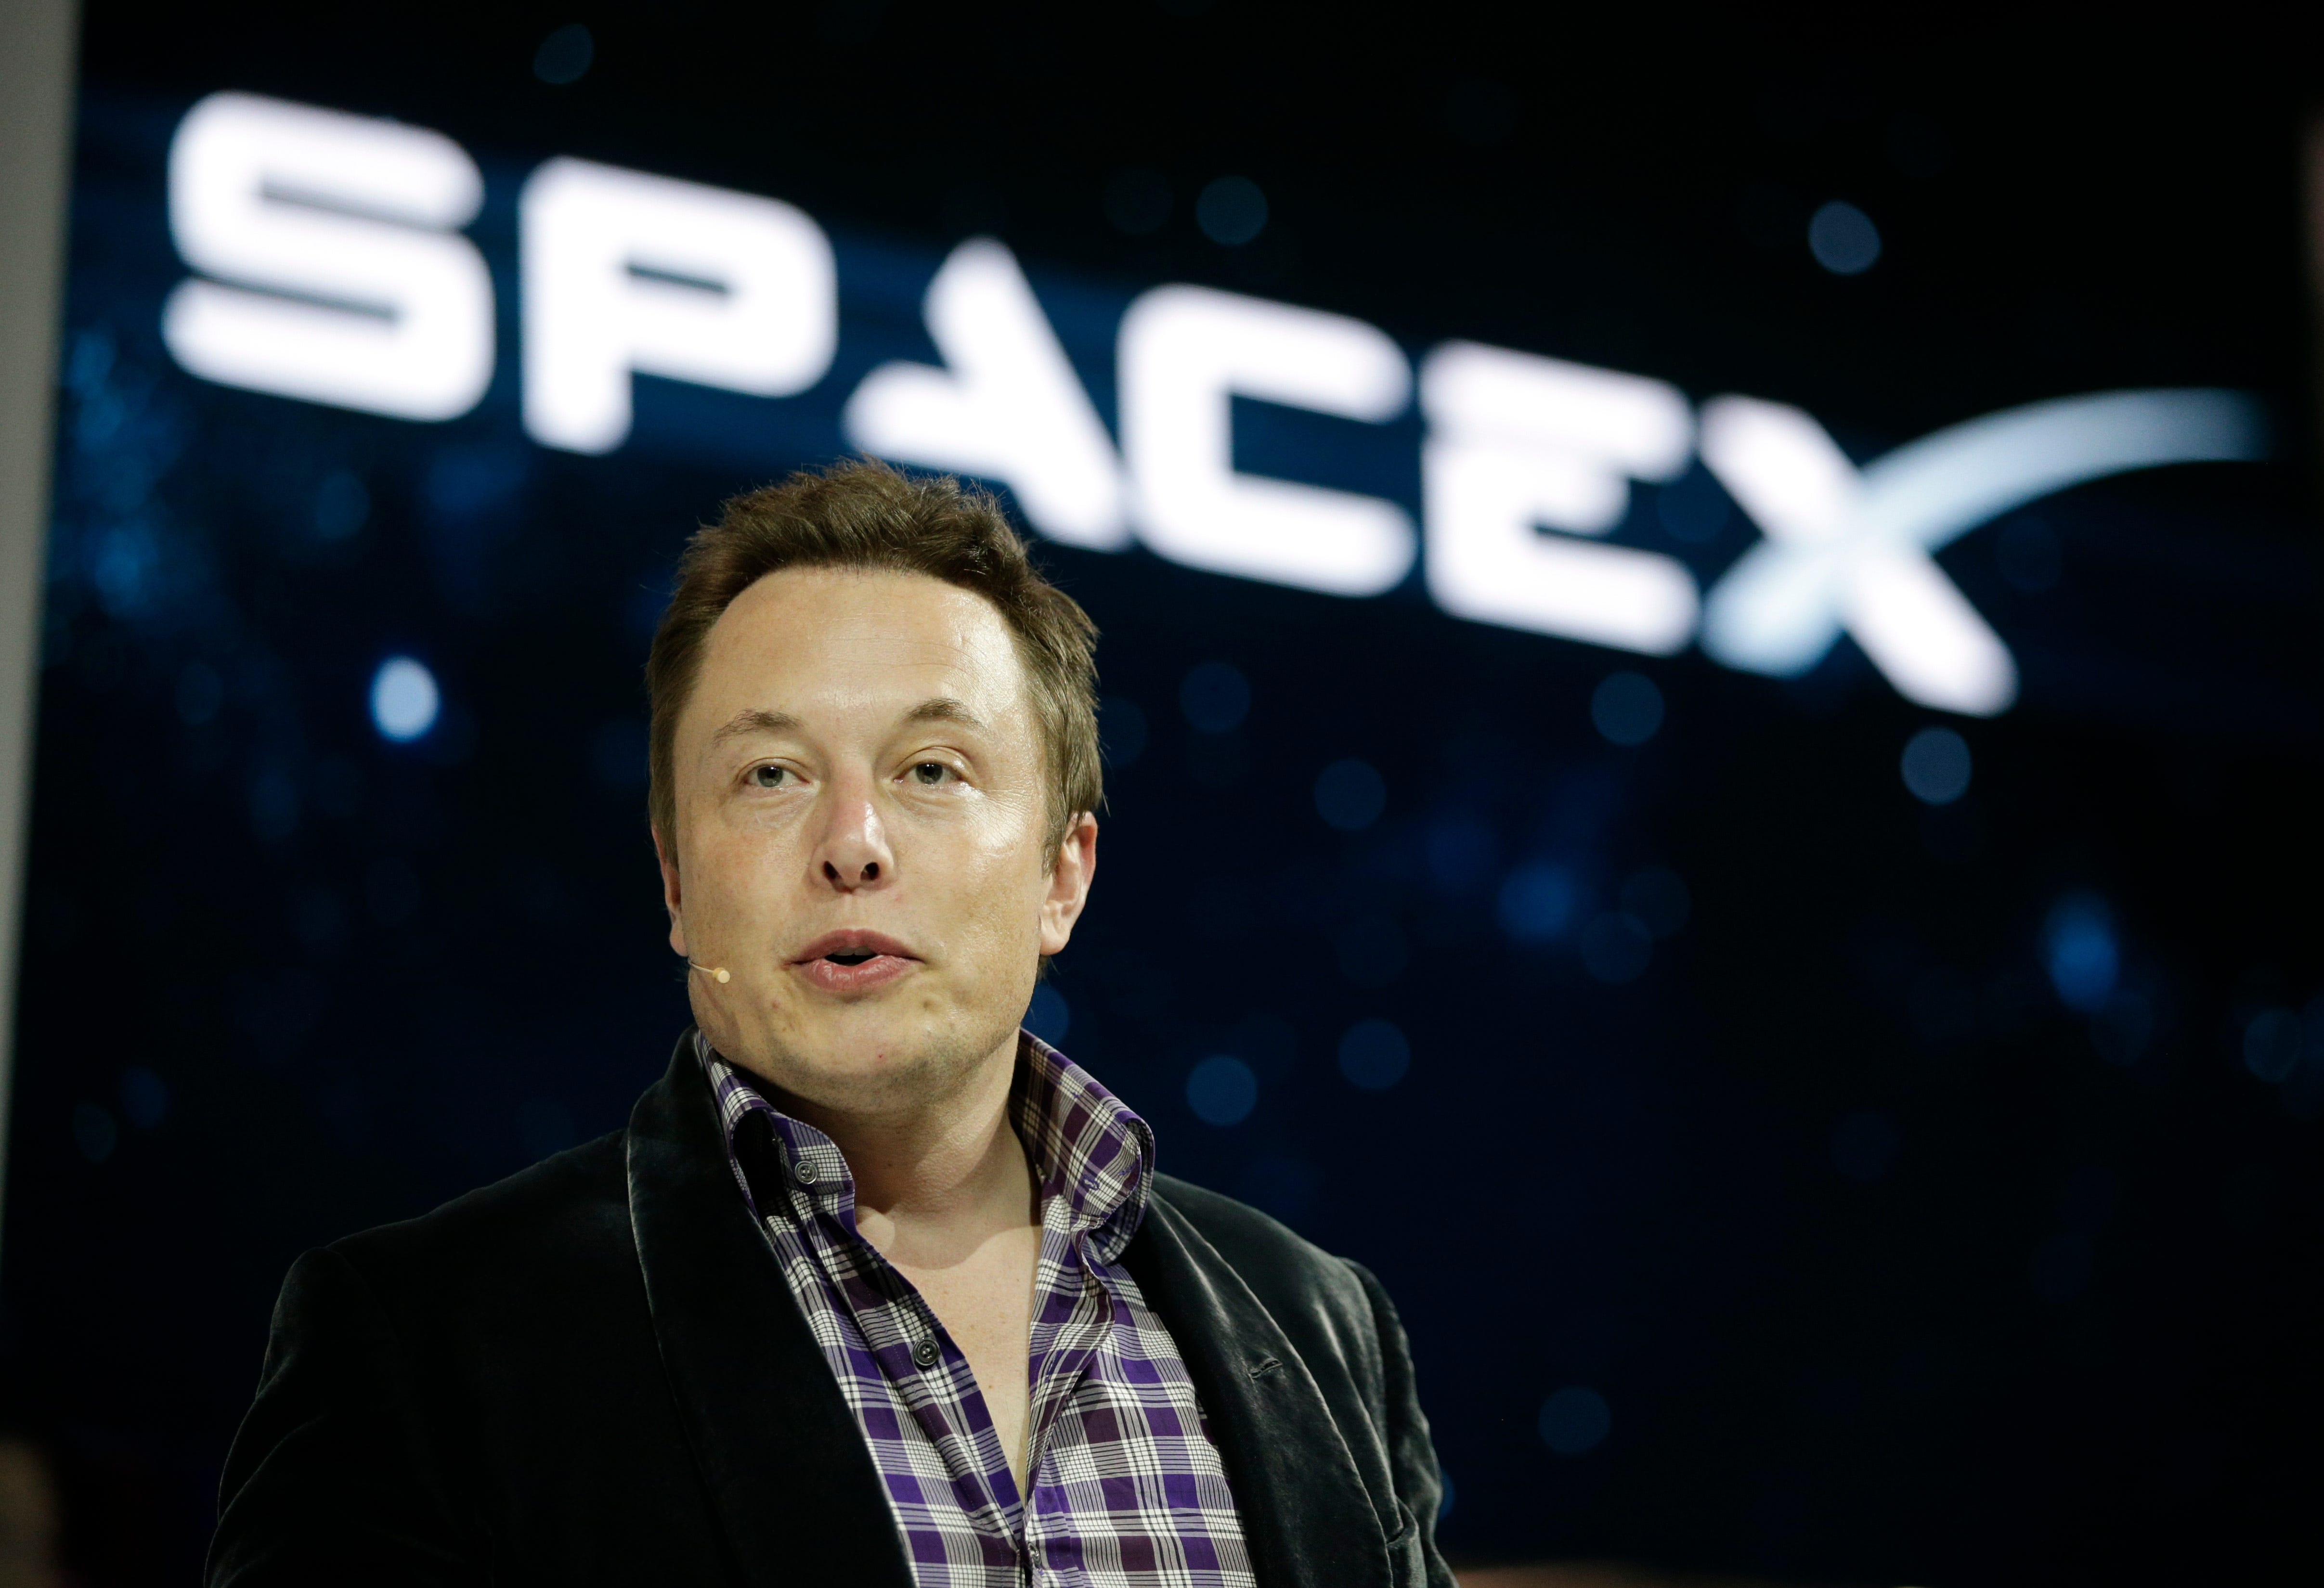 Elon Musk aims to make fast satellite internet with Starlink, but will it be worth it?